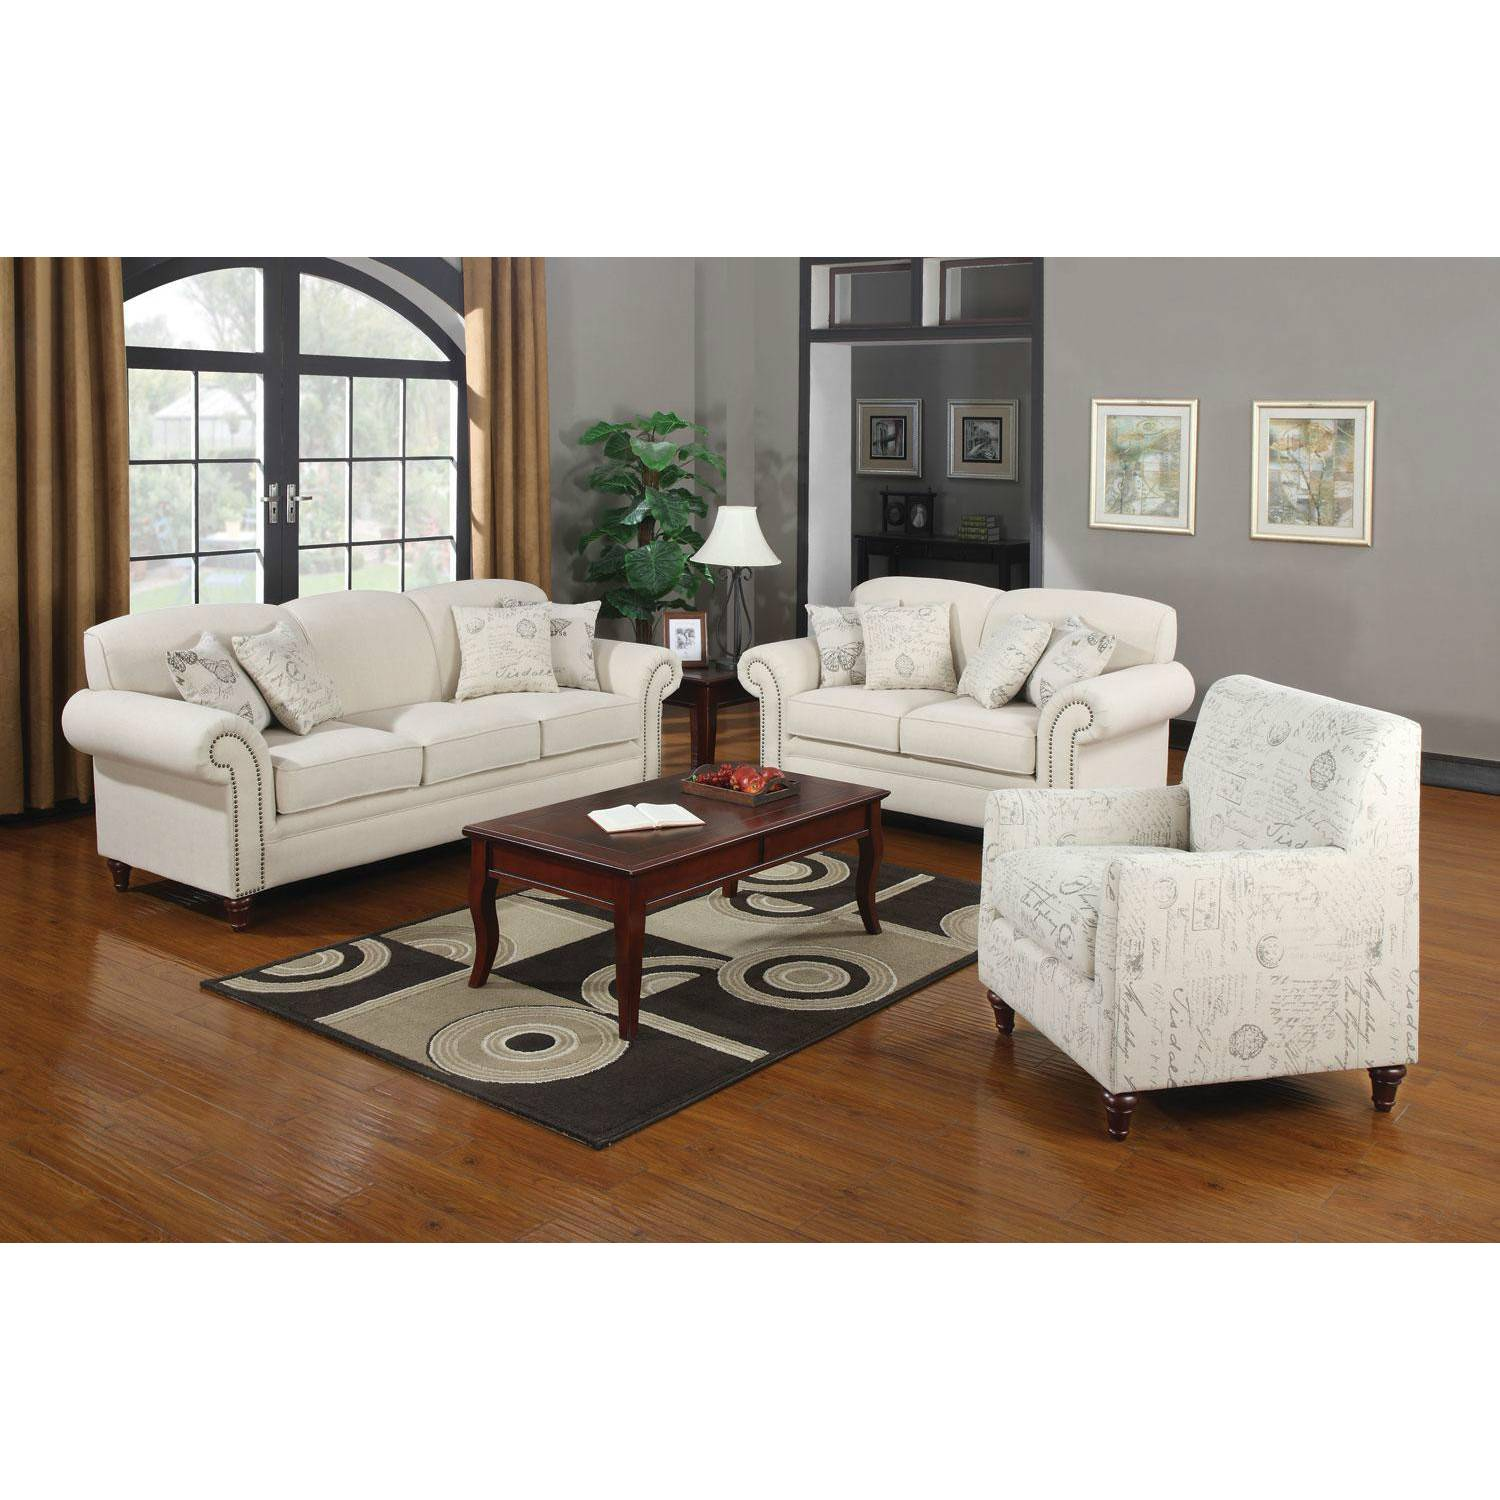 Pc Norah Traditional Sofa Love Seat